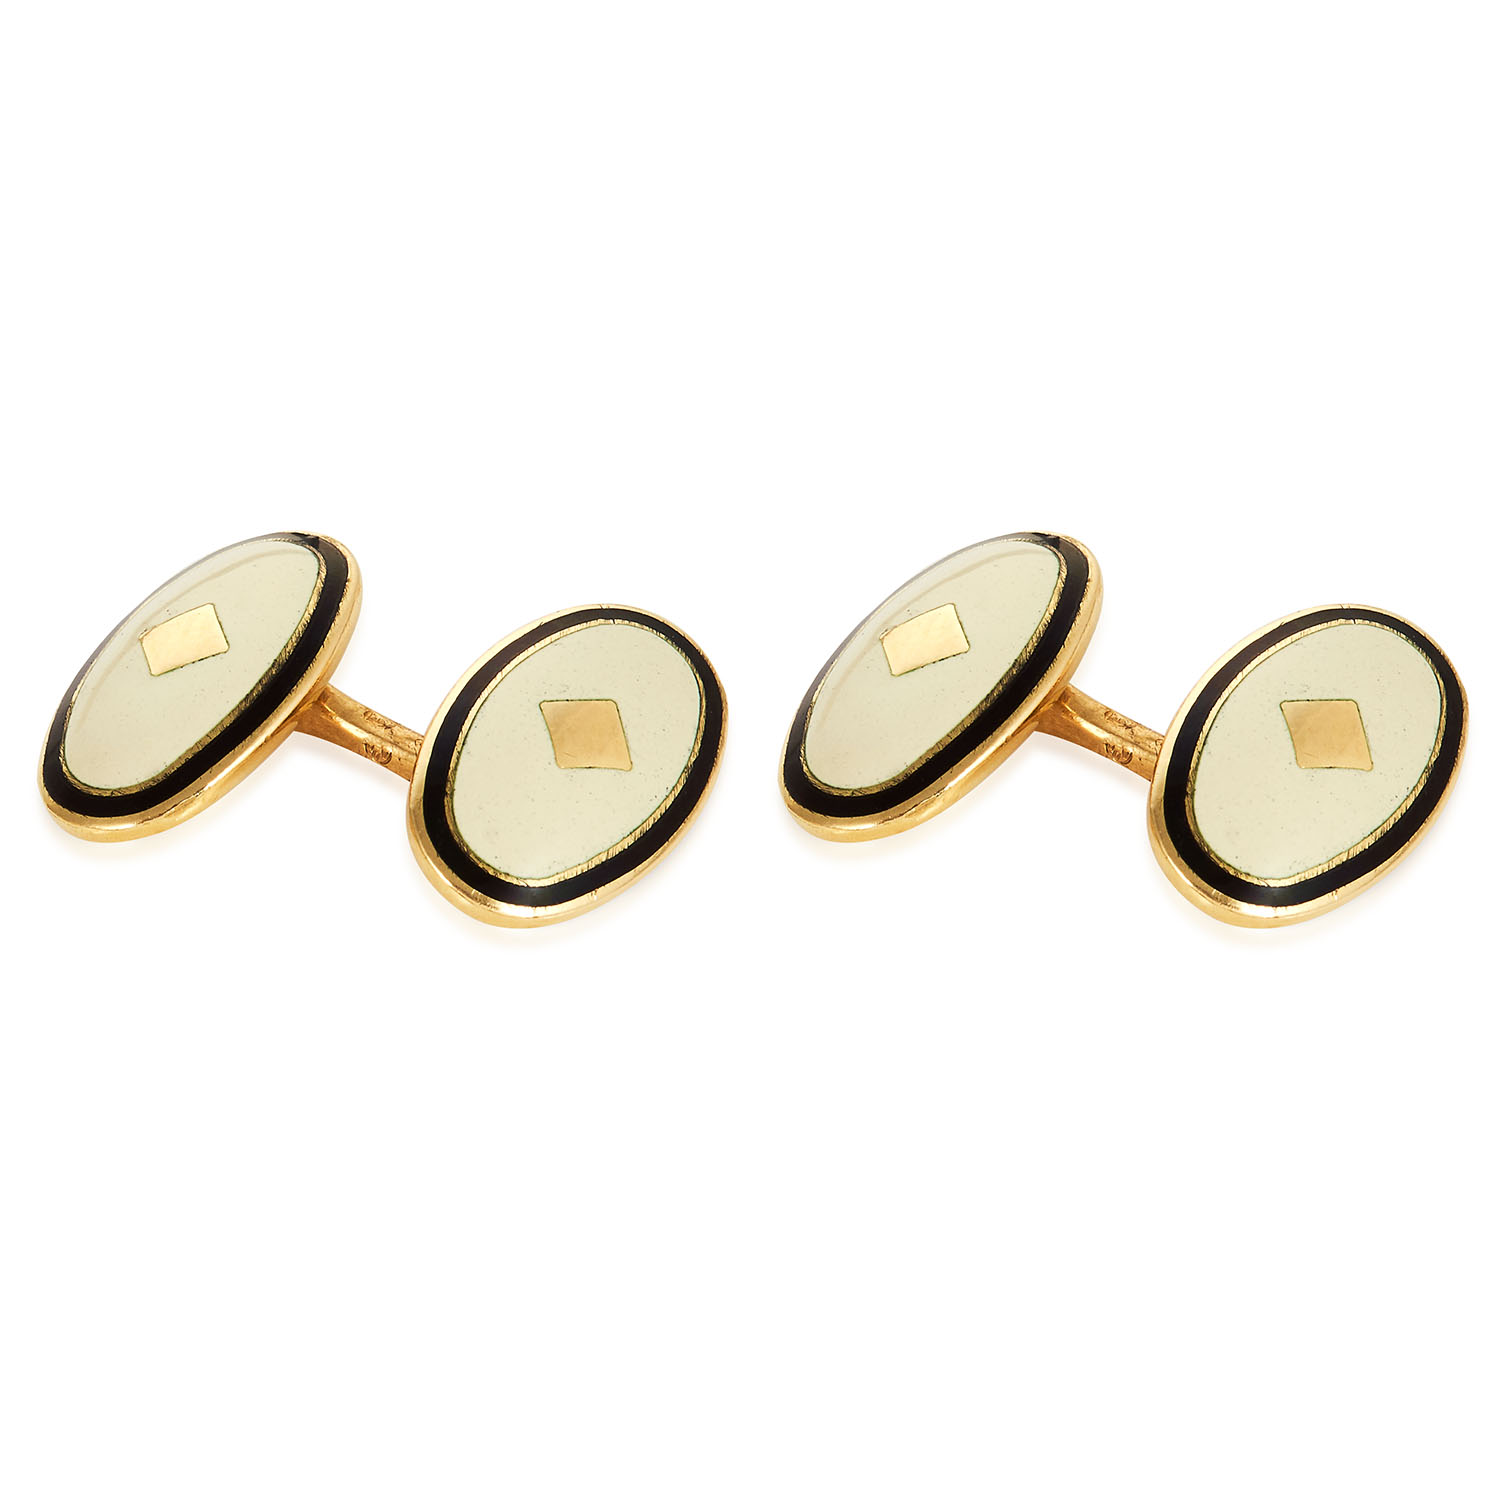 A PAIR OF VINTAGE BLACK AND WHITE ENAMEL CUFFLINKS in 18ct yellow gold, each formed of two oval